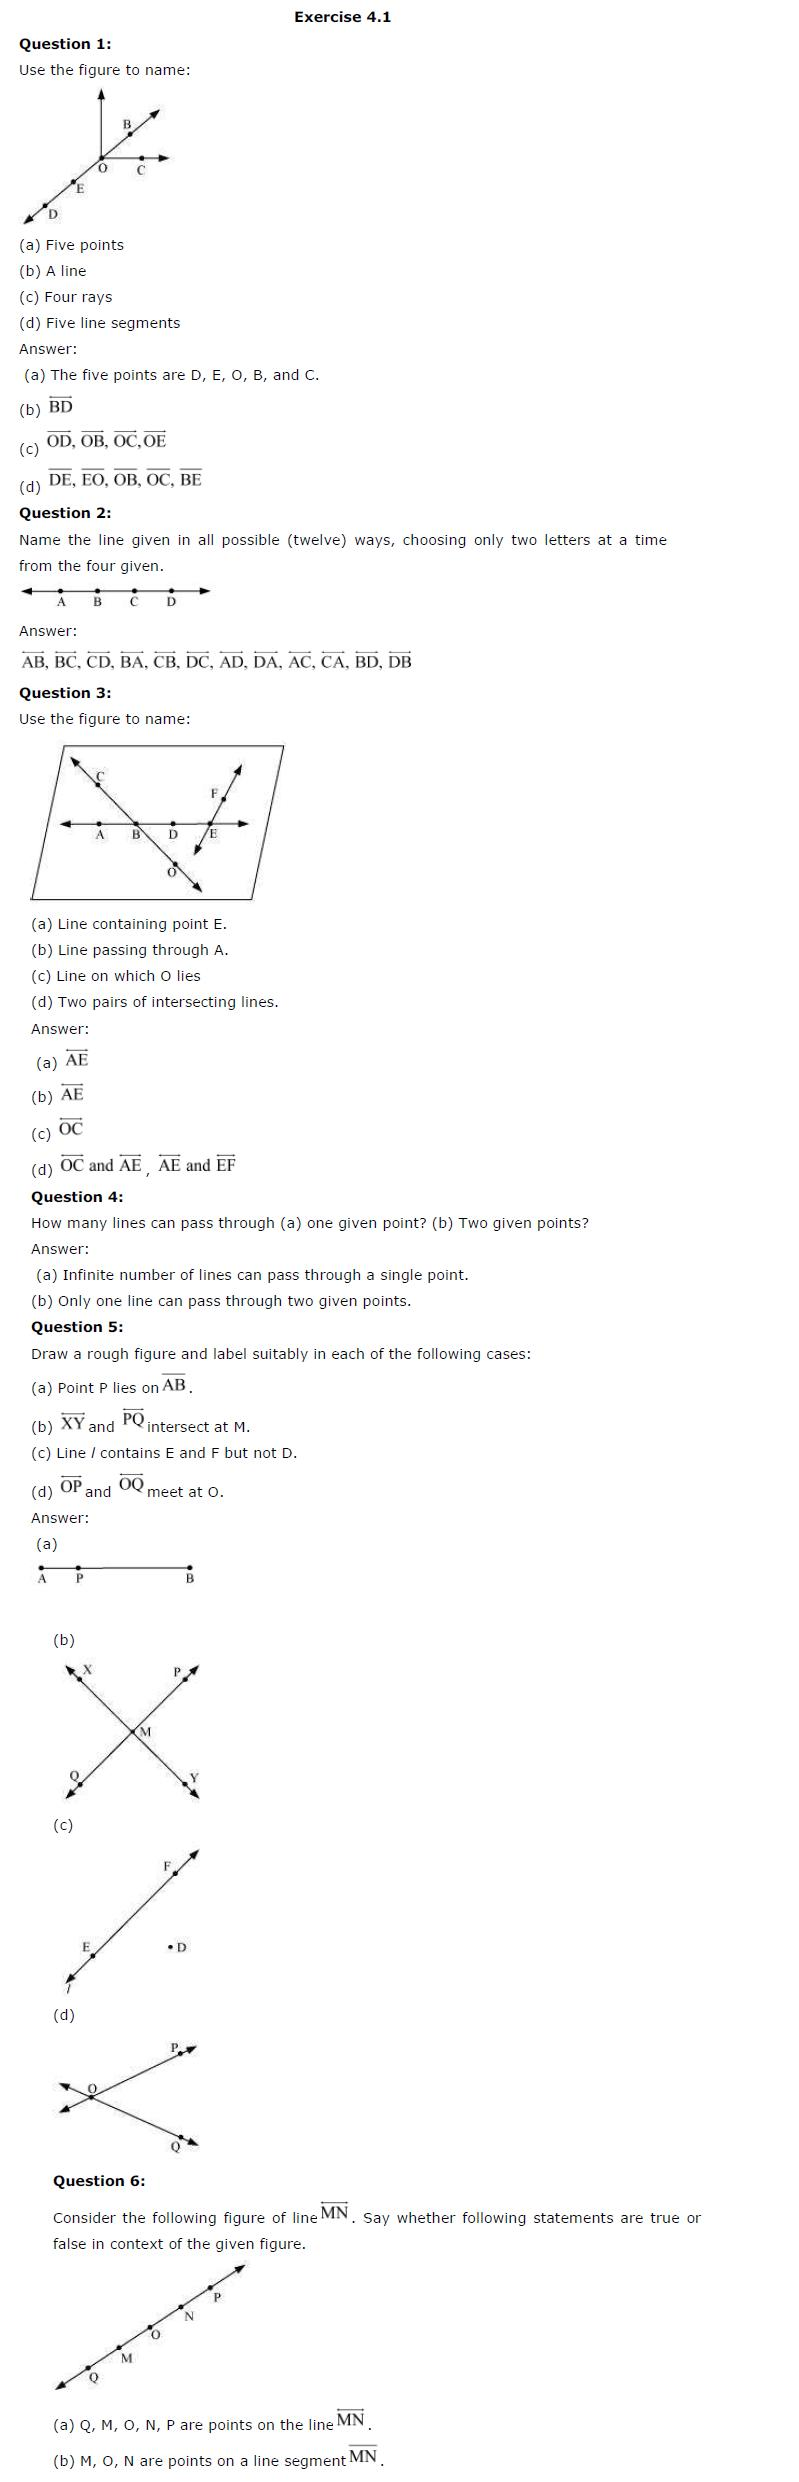 NCERT Solutions For Class 6th Maths Chapter 4 Basic Geometrical Ideas PDF Download Free 2018-19